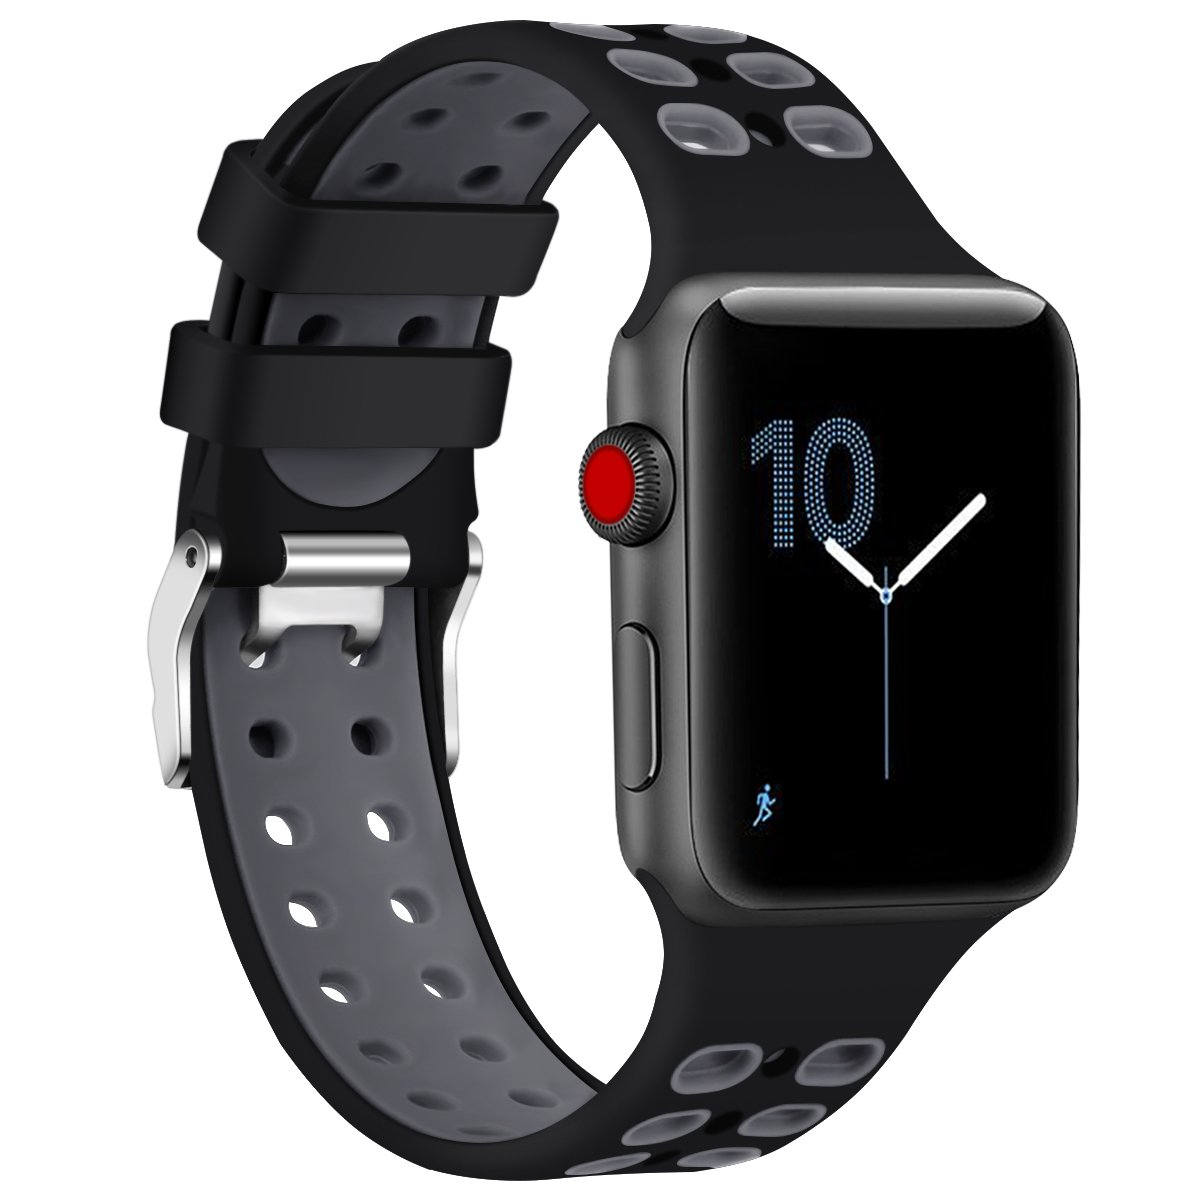 Sport Edition Band for Apple Watch 38mm 42mm,Soft Silicone Sport Strap Replacement Bands with Classic Square Stainless Steel Dual Buckles for iWatch ...